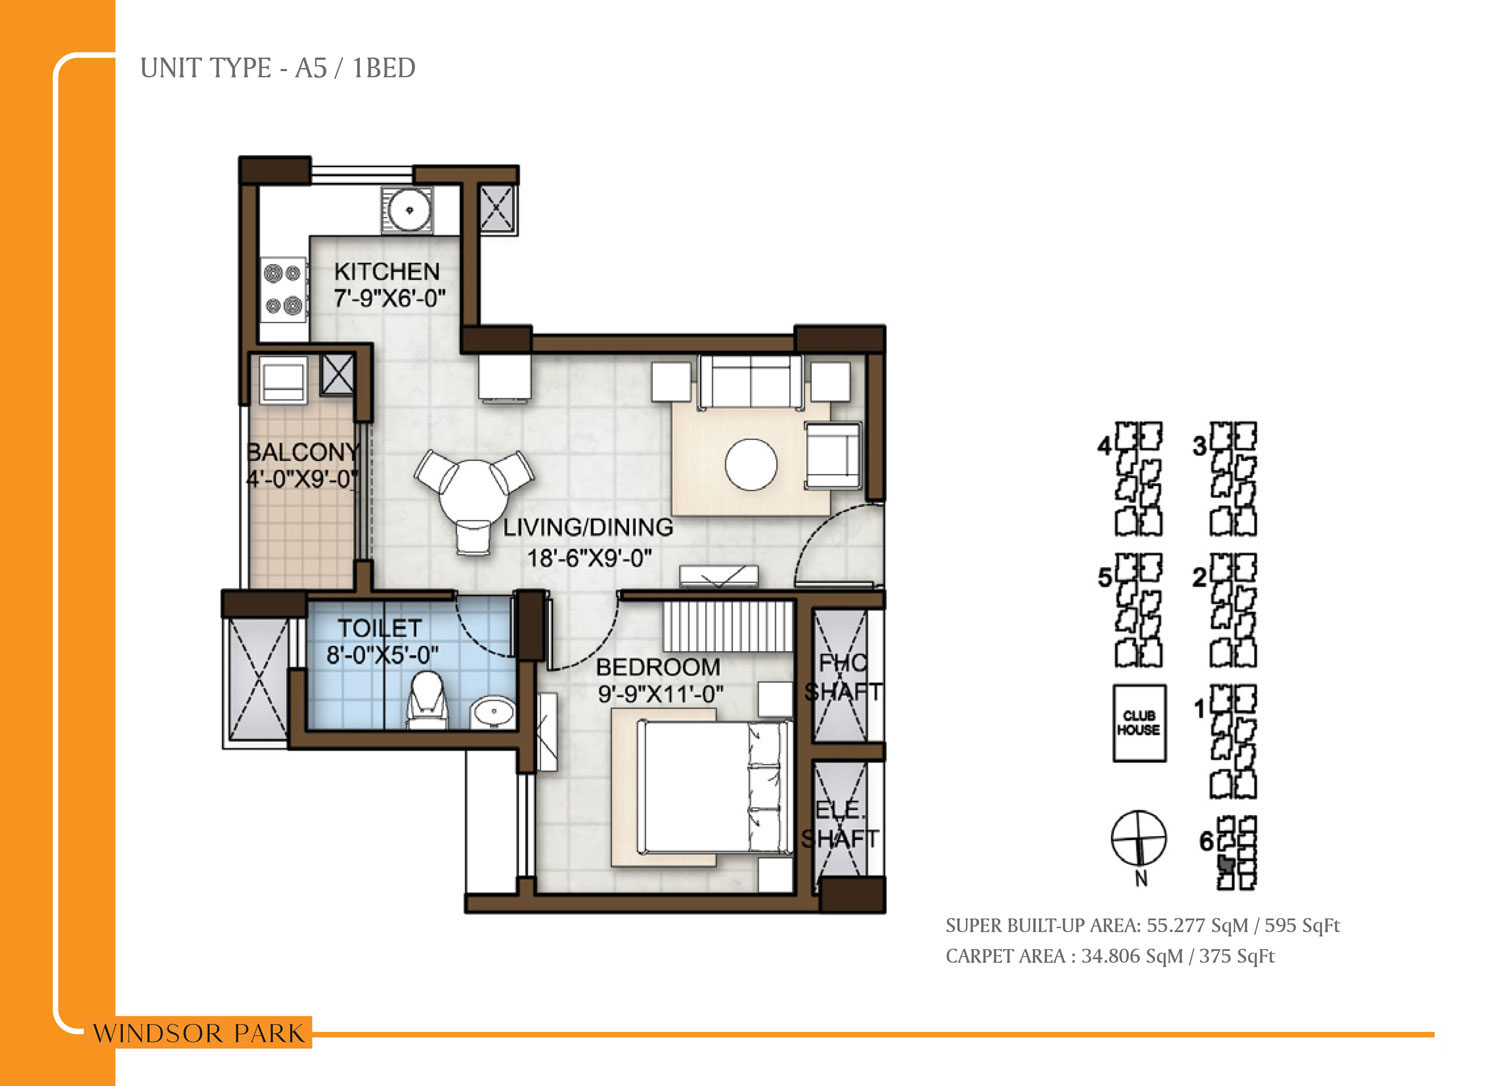 Type A5 - 595 Sq Ft